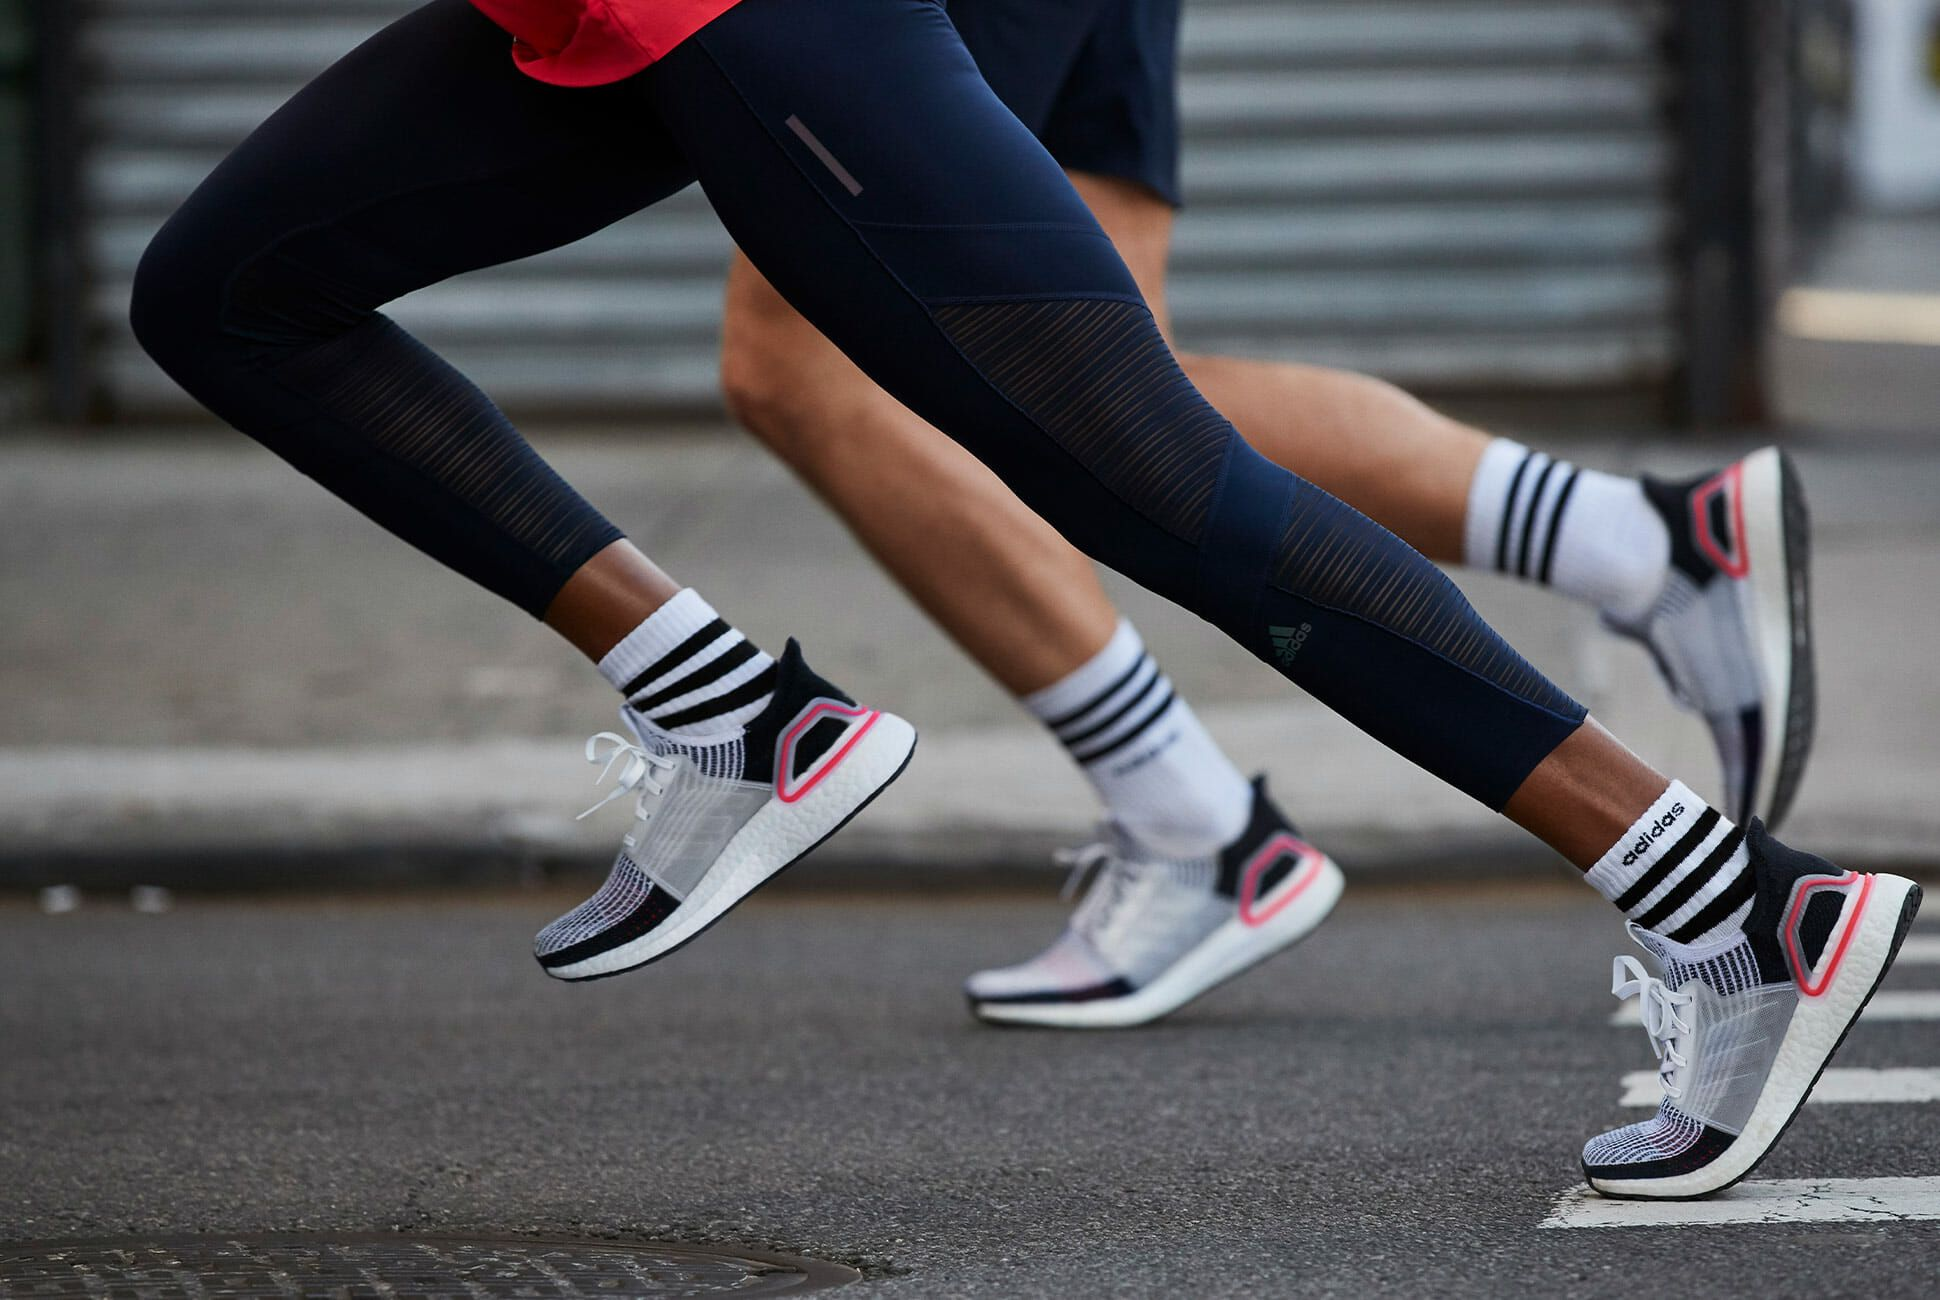 The 15 Best New Running Shoes of 2019 • Gear Patrol